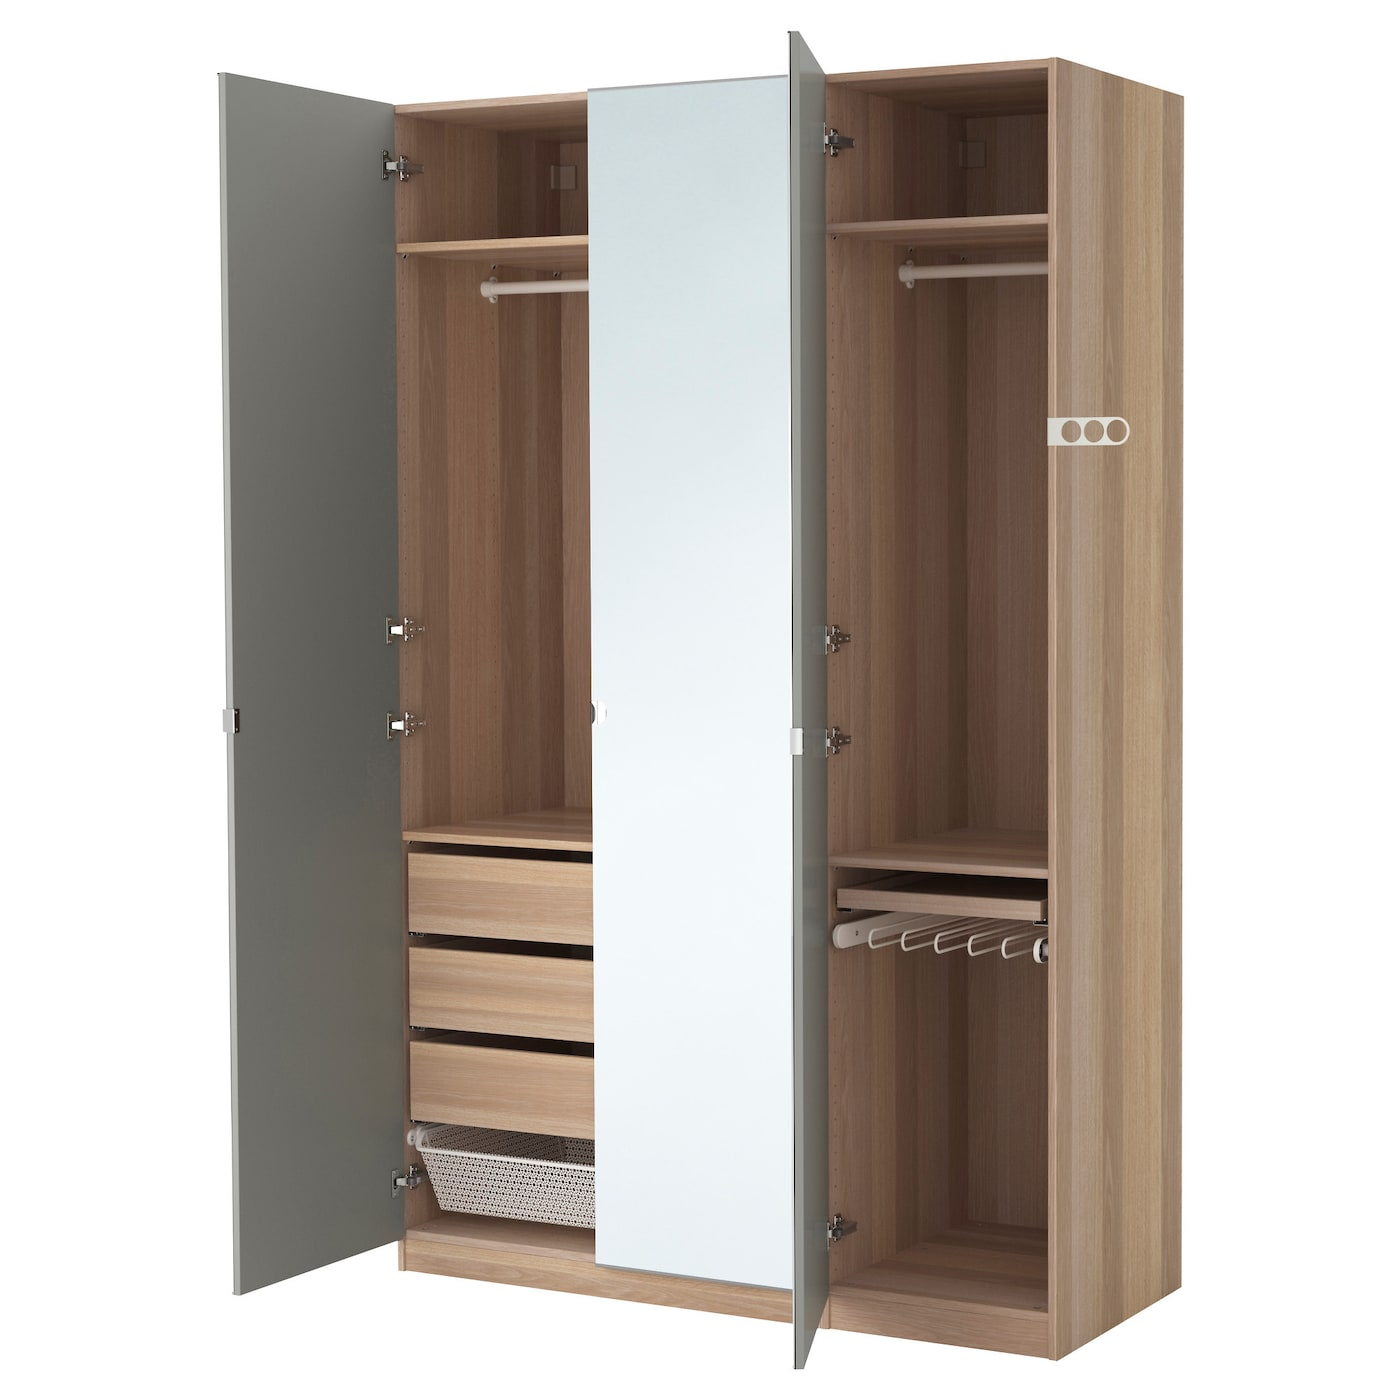 pax wardrobe white stained oak effect vikedal mirror glass 150x60x236 cm ikea. Black Bedroom Furniture Sets. Home Design Ideas